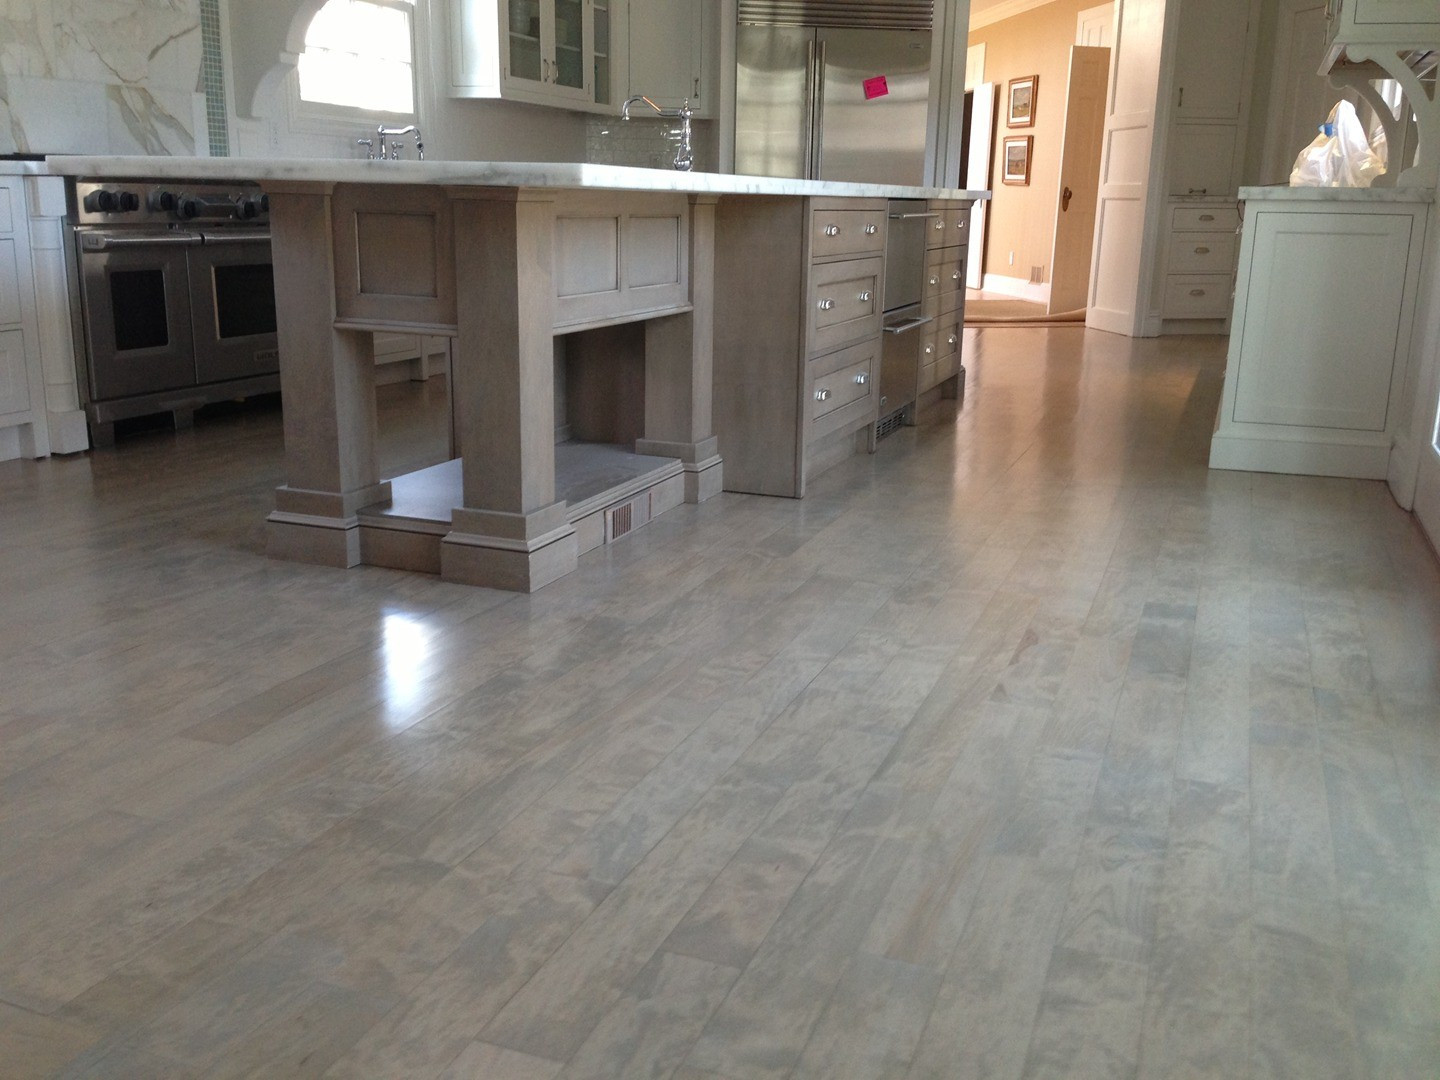 how expensive to refinish hardwood floors of 19 awesome how to restore hardwood floors pictures dizpos com throughout how to restore hardwood floors awesome j r hardwood floors l l c home collection of 19 awesome how